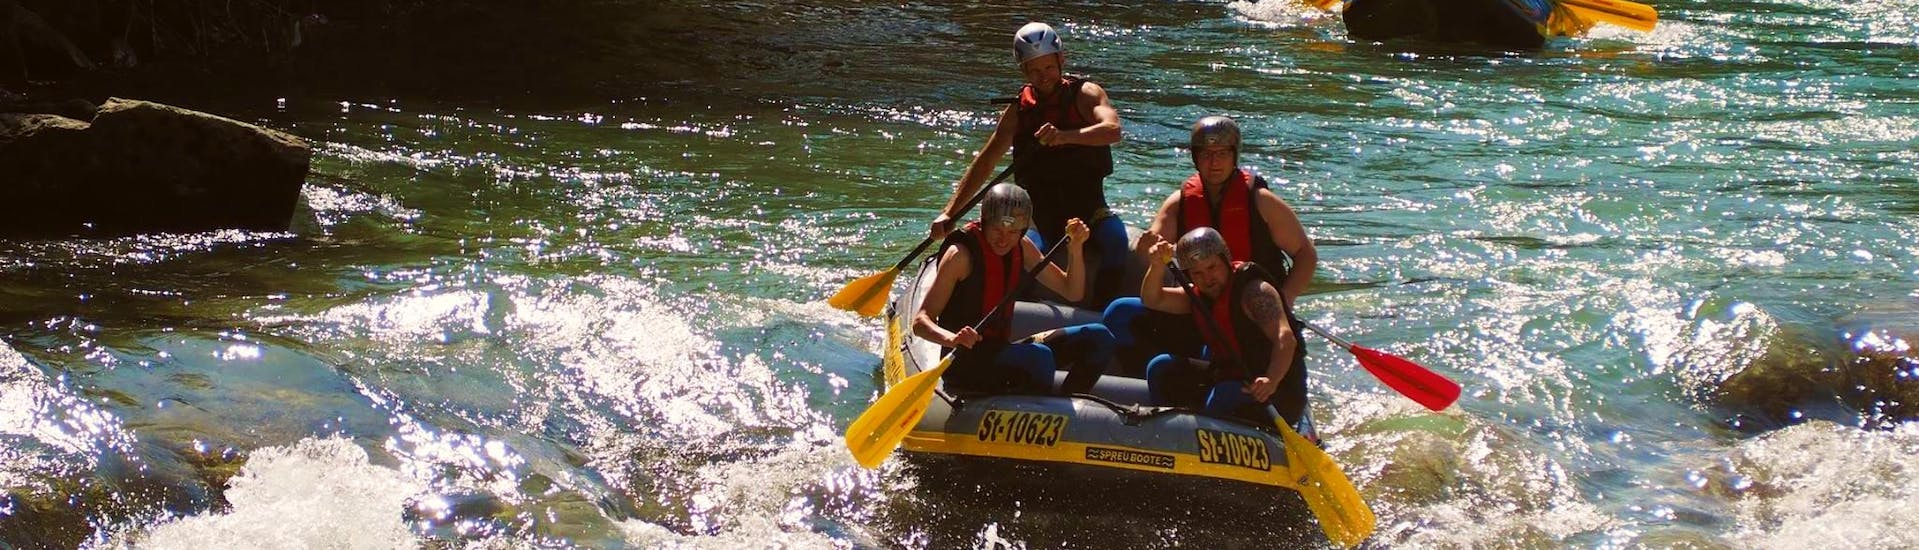 A group of friends is enjoying their rafting tour on the Enns river with Dachstein Tauern Adventure.